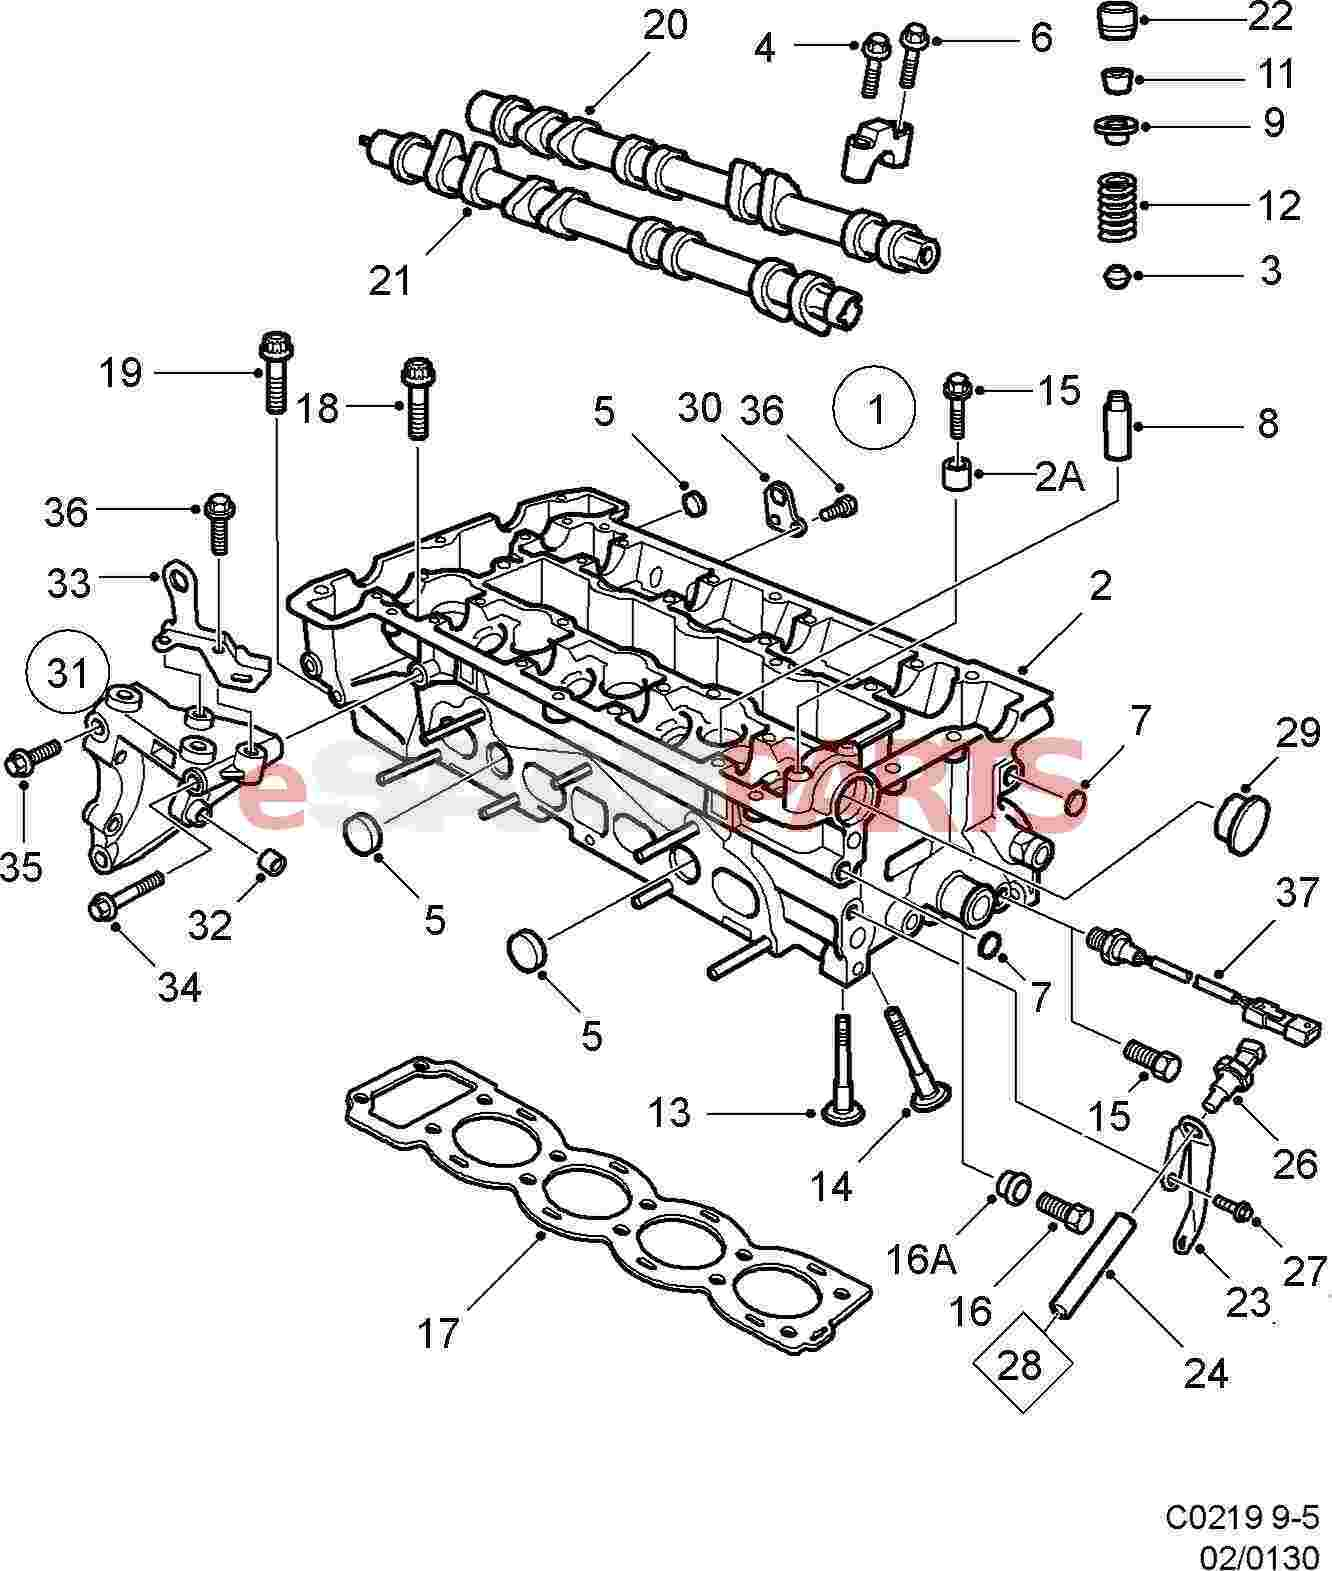 Belthond01 besides How To Replace Timing Chains On Jaguar S Type 2 5 24v 2001 2005 likewise Viewparts in addition 2006 Mazda Speed 6 2 3l Mzr Disi Turbo Serpentine Belt Diagram in addition Firingorder. on 5 3l diagram